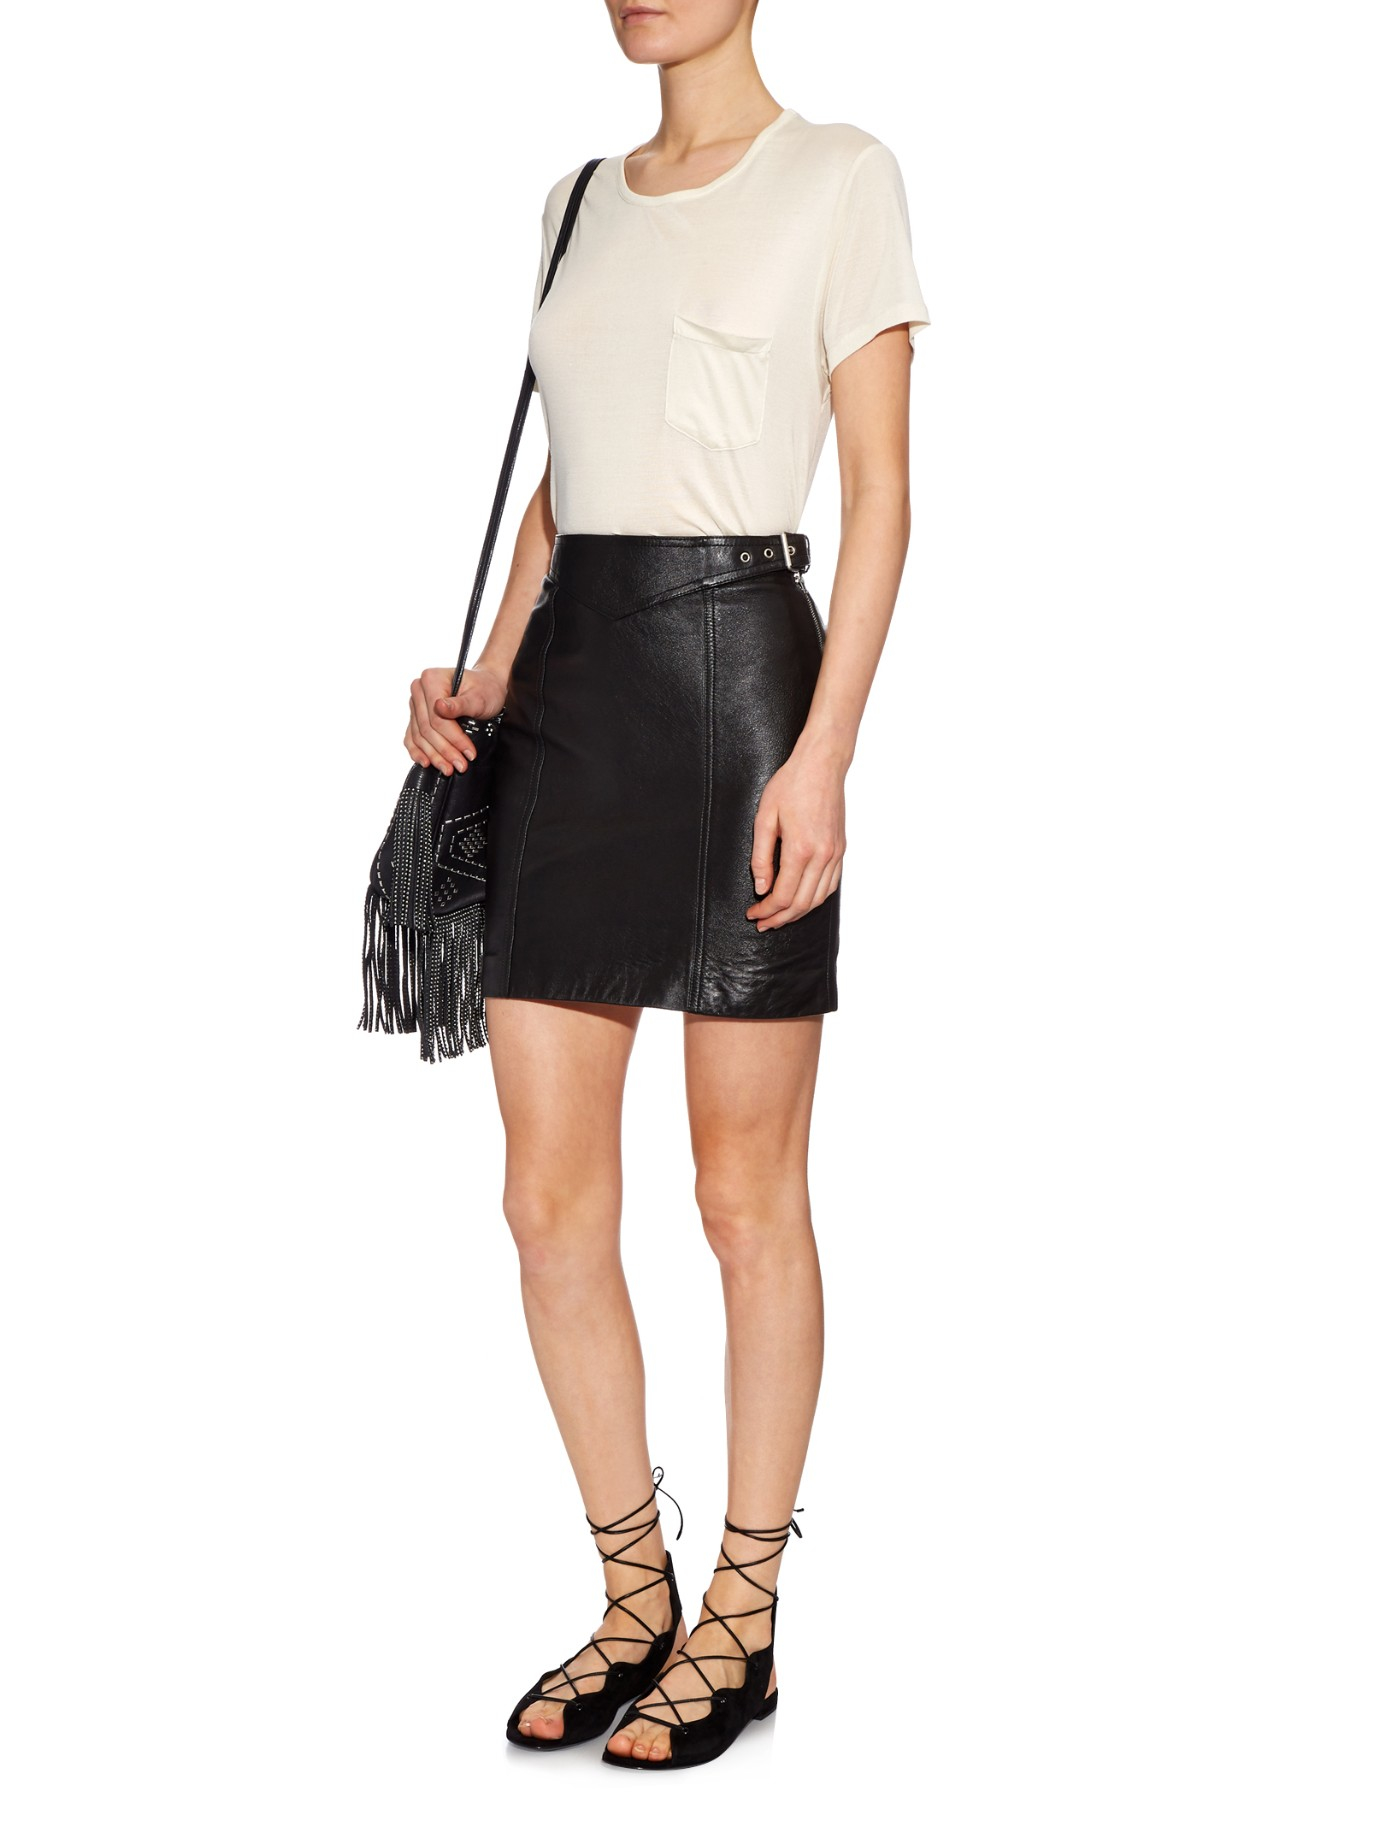 Saint laurent Side-buckle Leather Mini Skirt in Black | Lyst